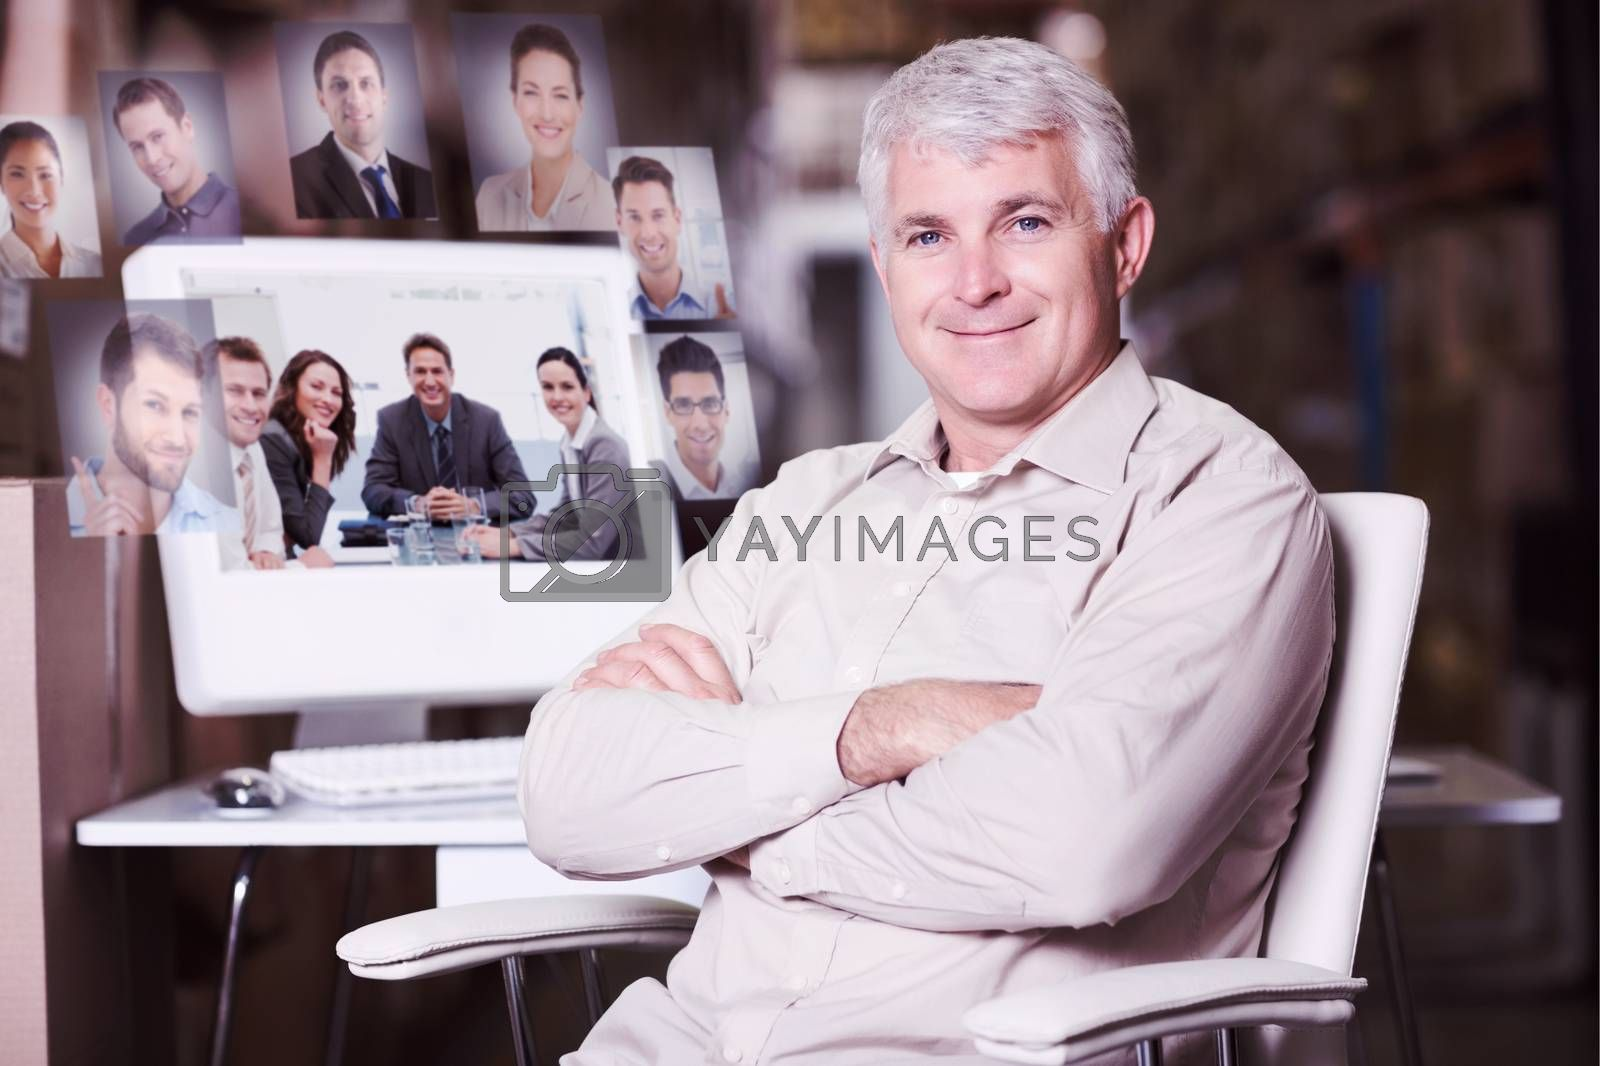 Warehouse manager using computer against portrait of a positive team sitting at a table